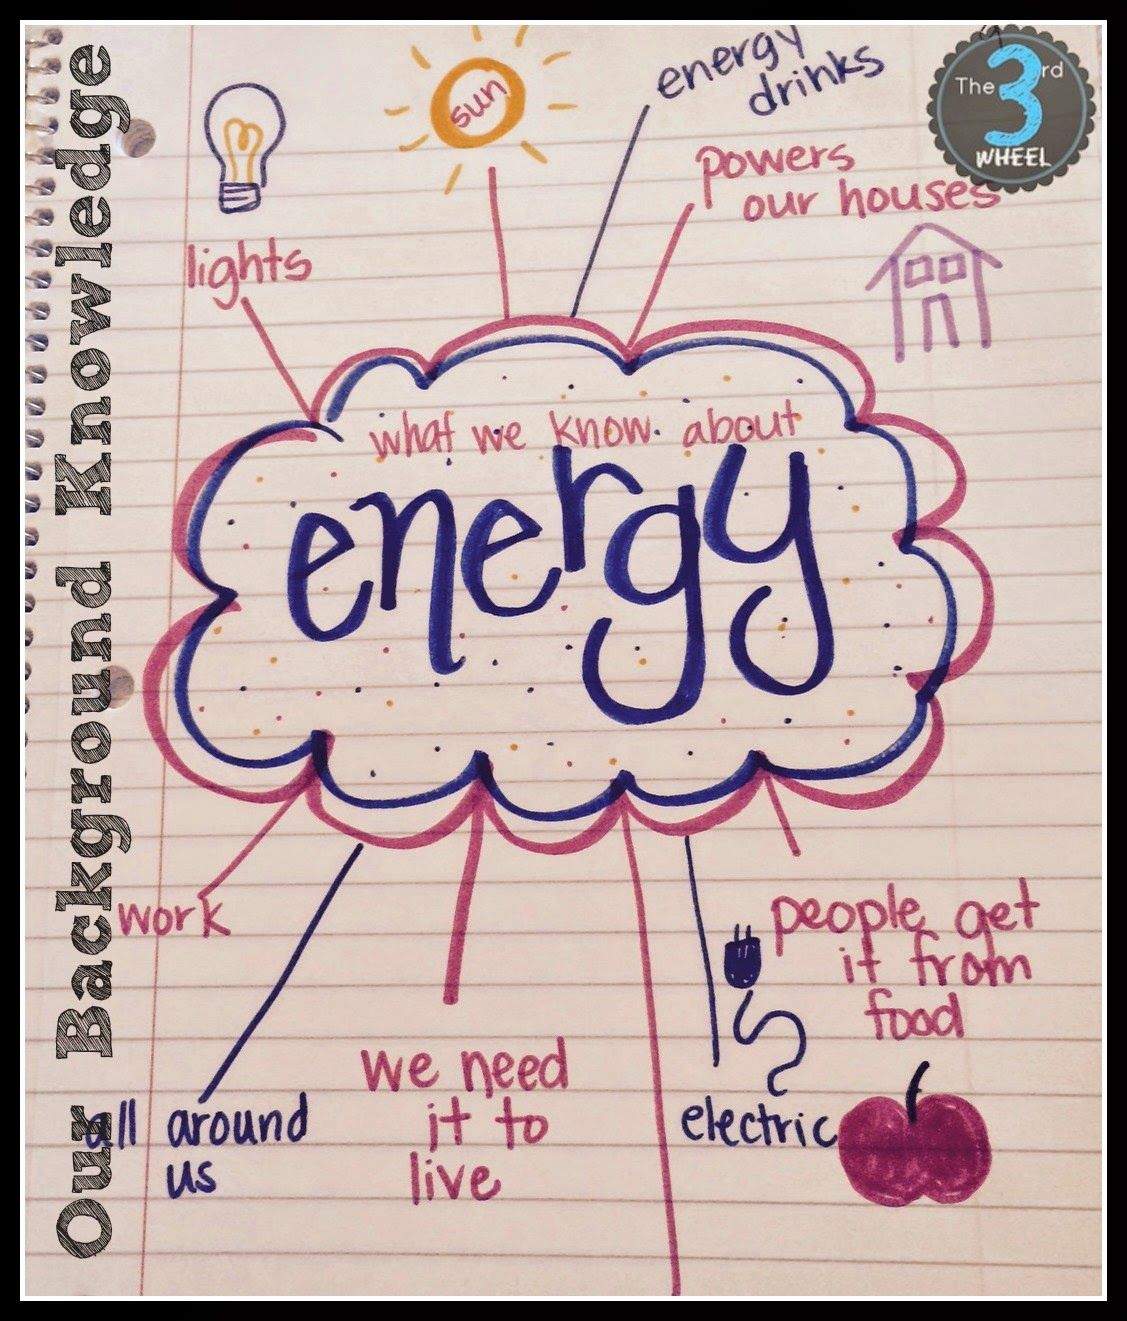 Workbooks solar energy worksheets for kids : Science Saturday: Energy | Outlines, Activities and Students